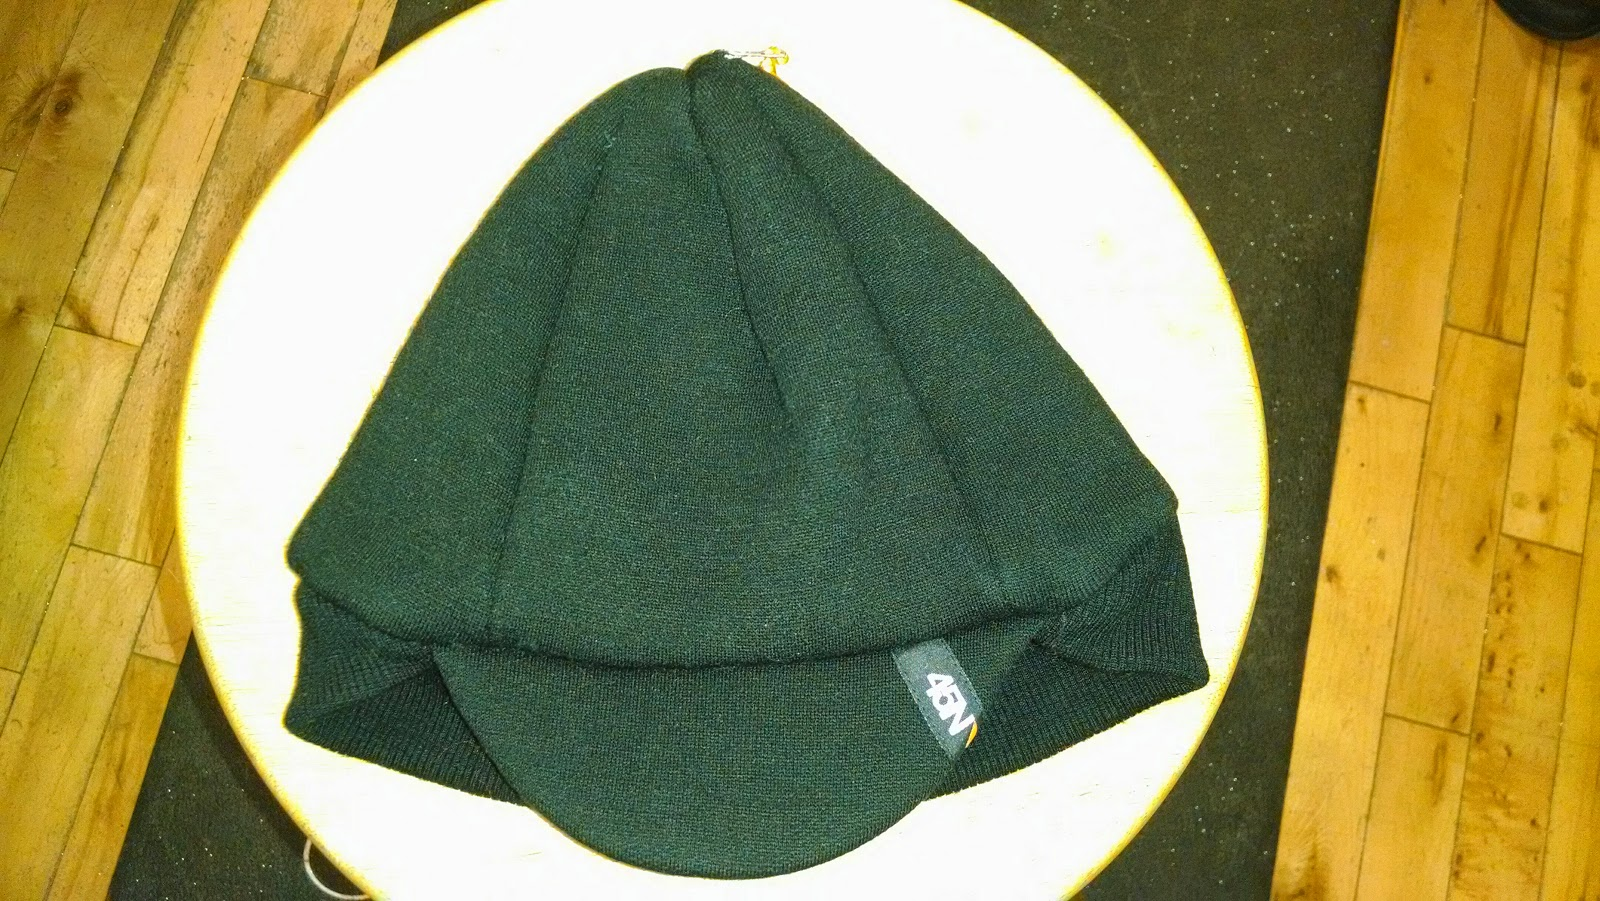 5caabe3dc07  Fleeced wool  Packable brim (makes storage easy)  Fabric  400 gram fleeced merino  wool with light jersey knit lining  7-panel crown (provides maximum ...